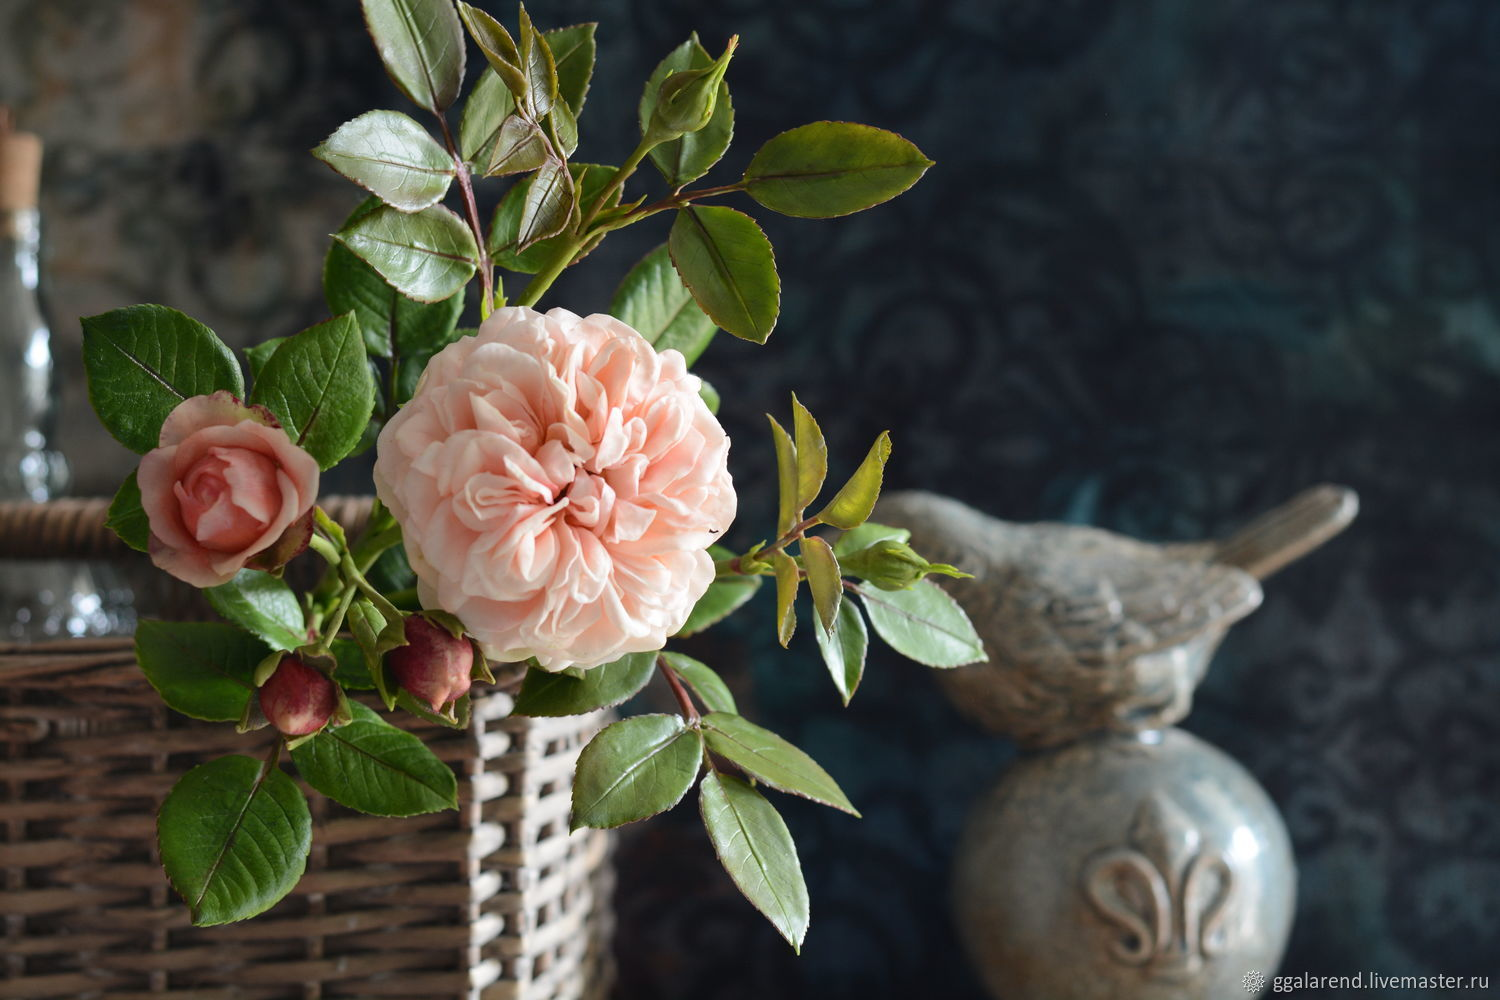 Chippendale is a rose as a work of art